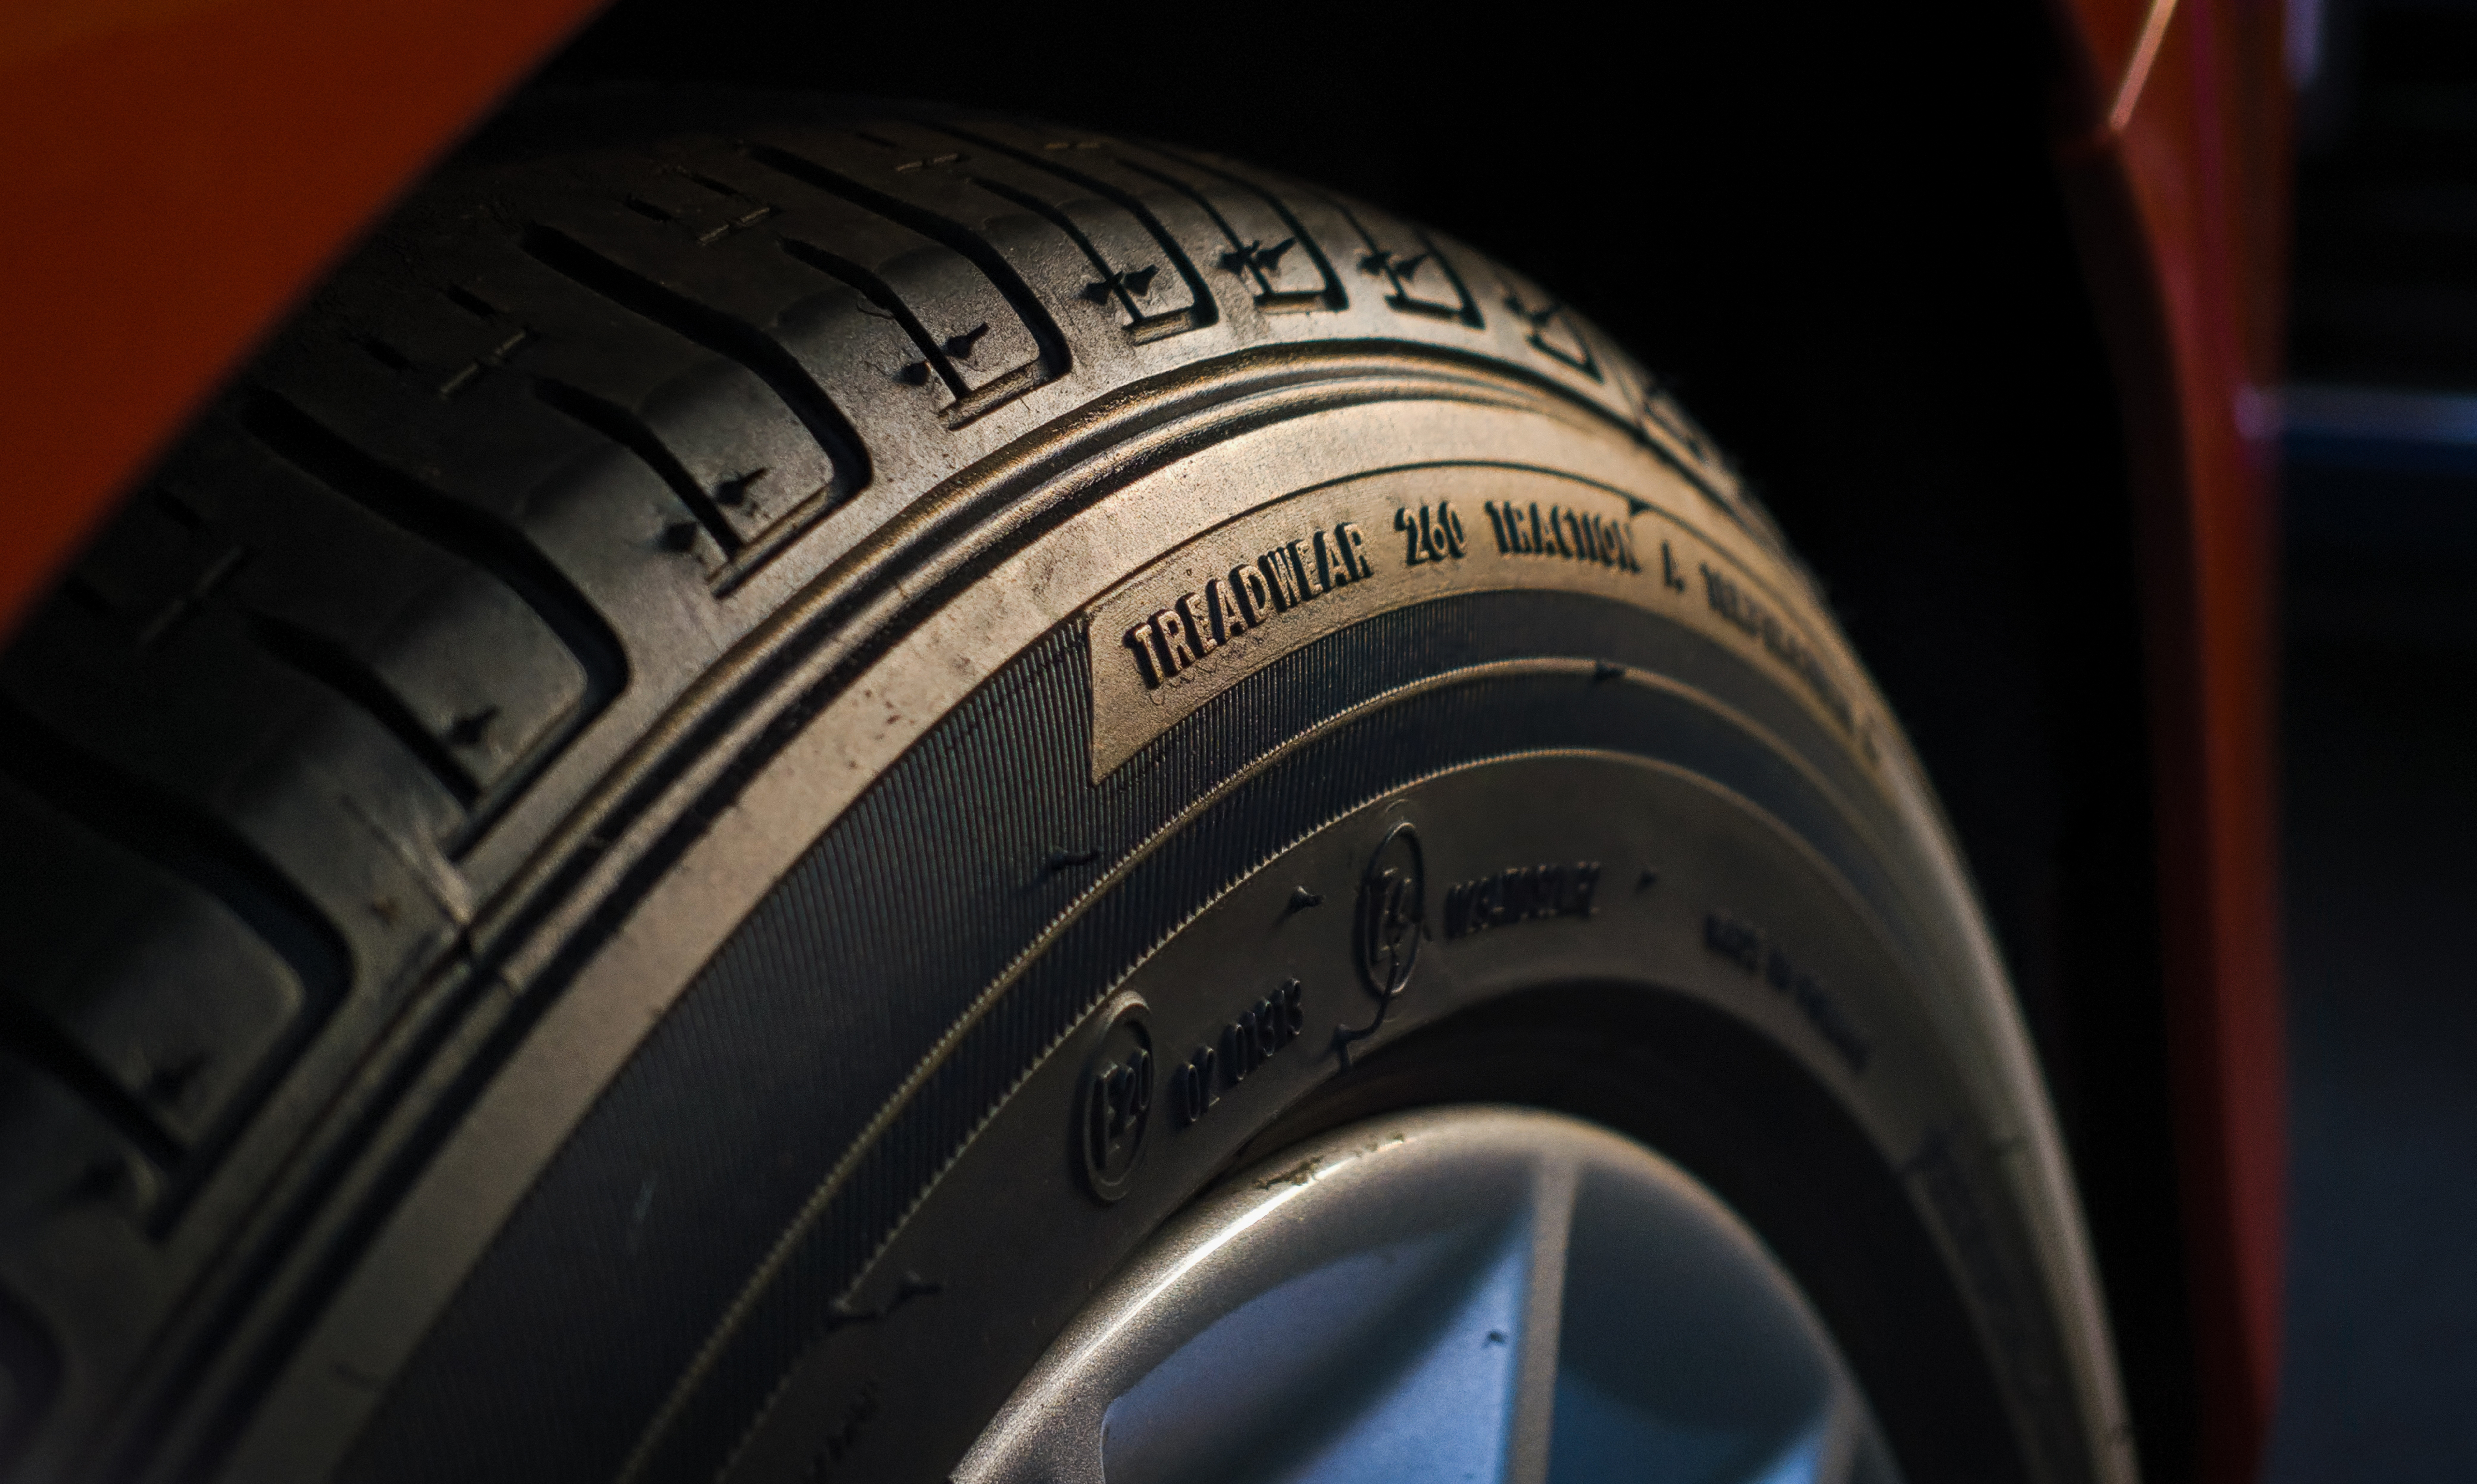 High End rubber tire closeup during sunset, focused on the typography.